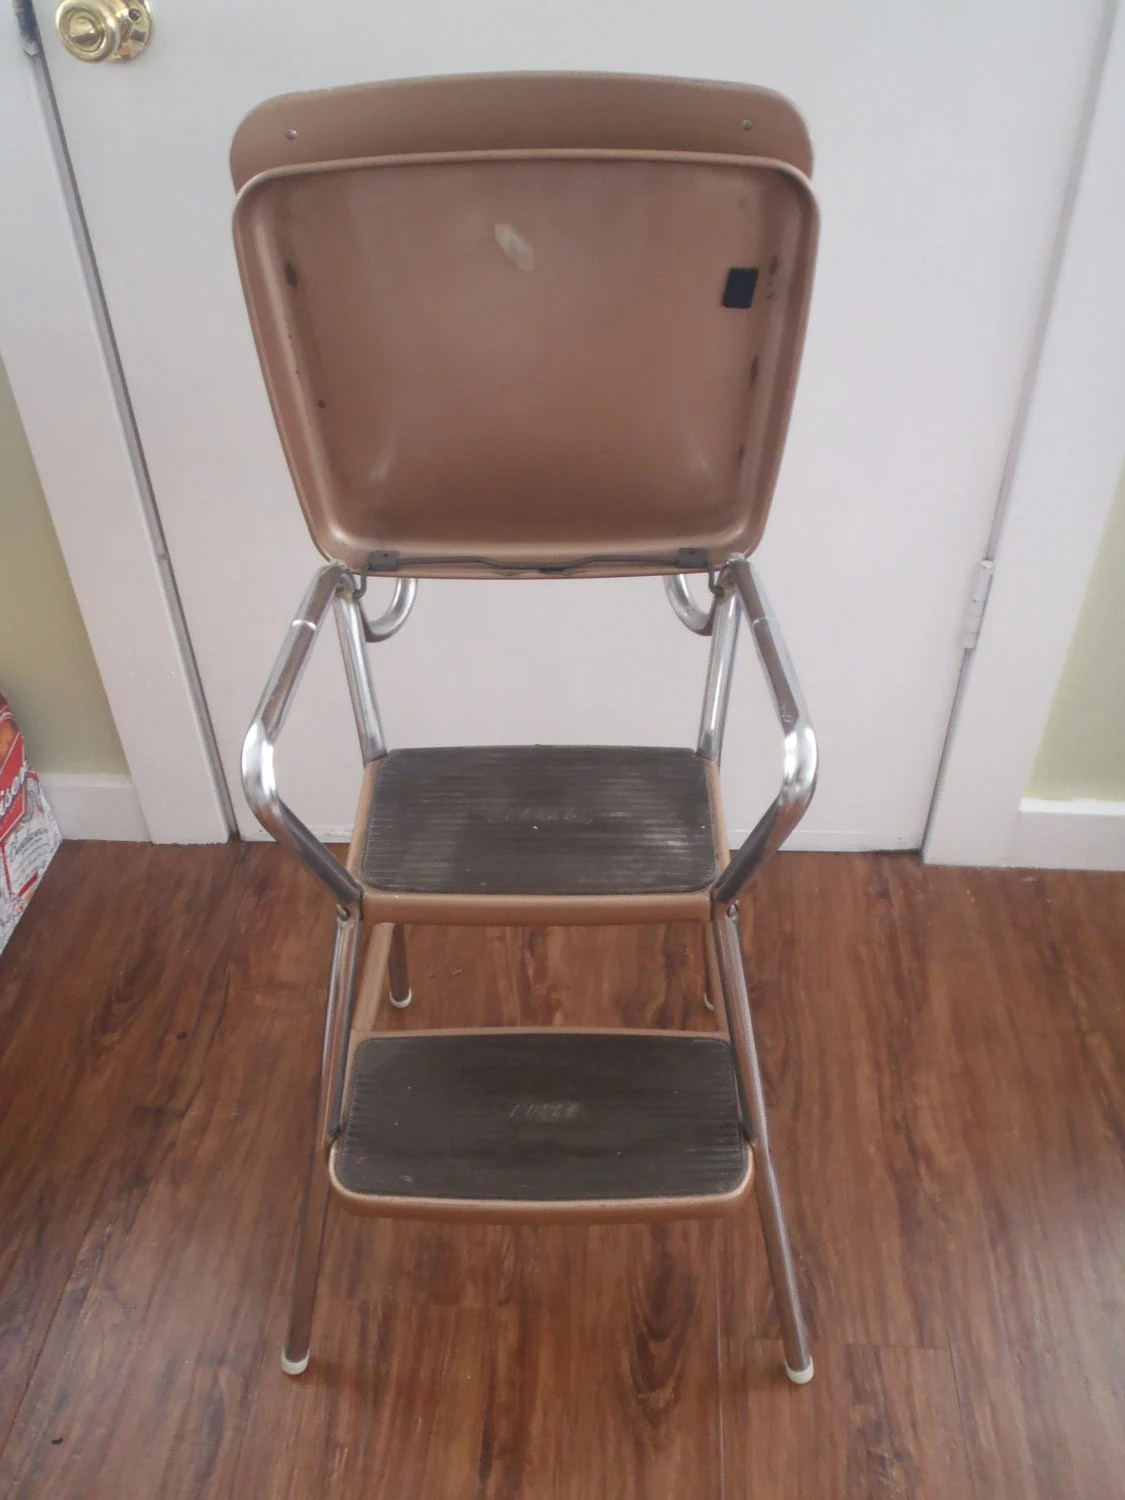 vintage kitchen step stool chair bobs furniture table cosco with flip up seat all